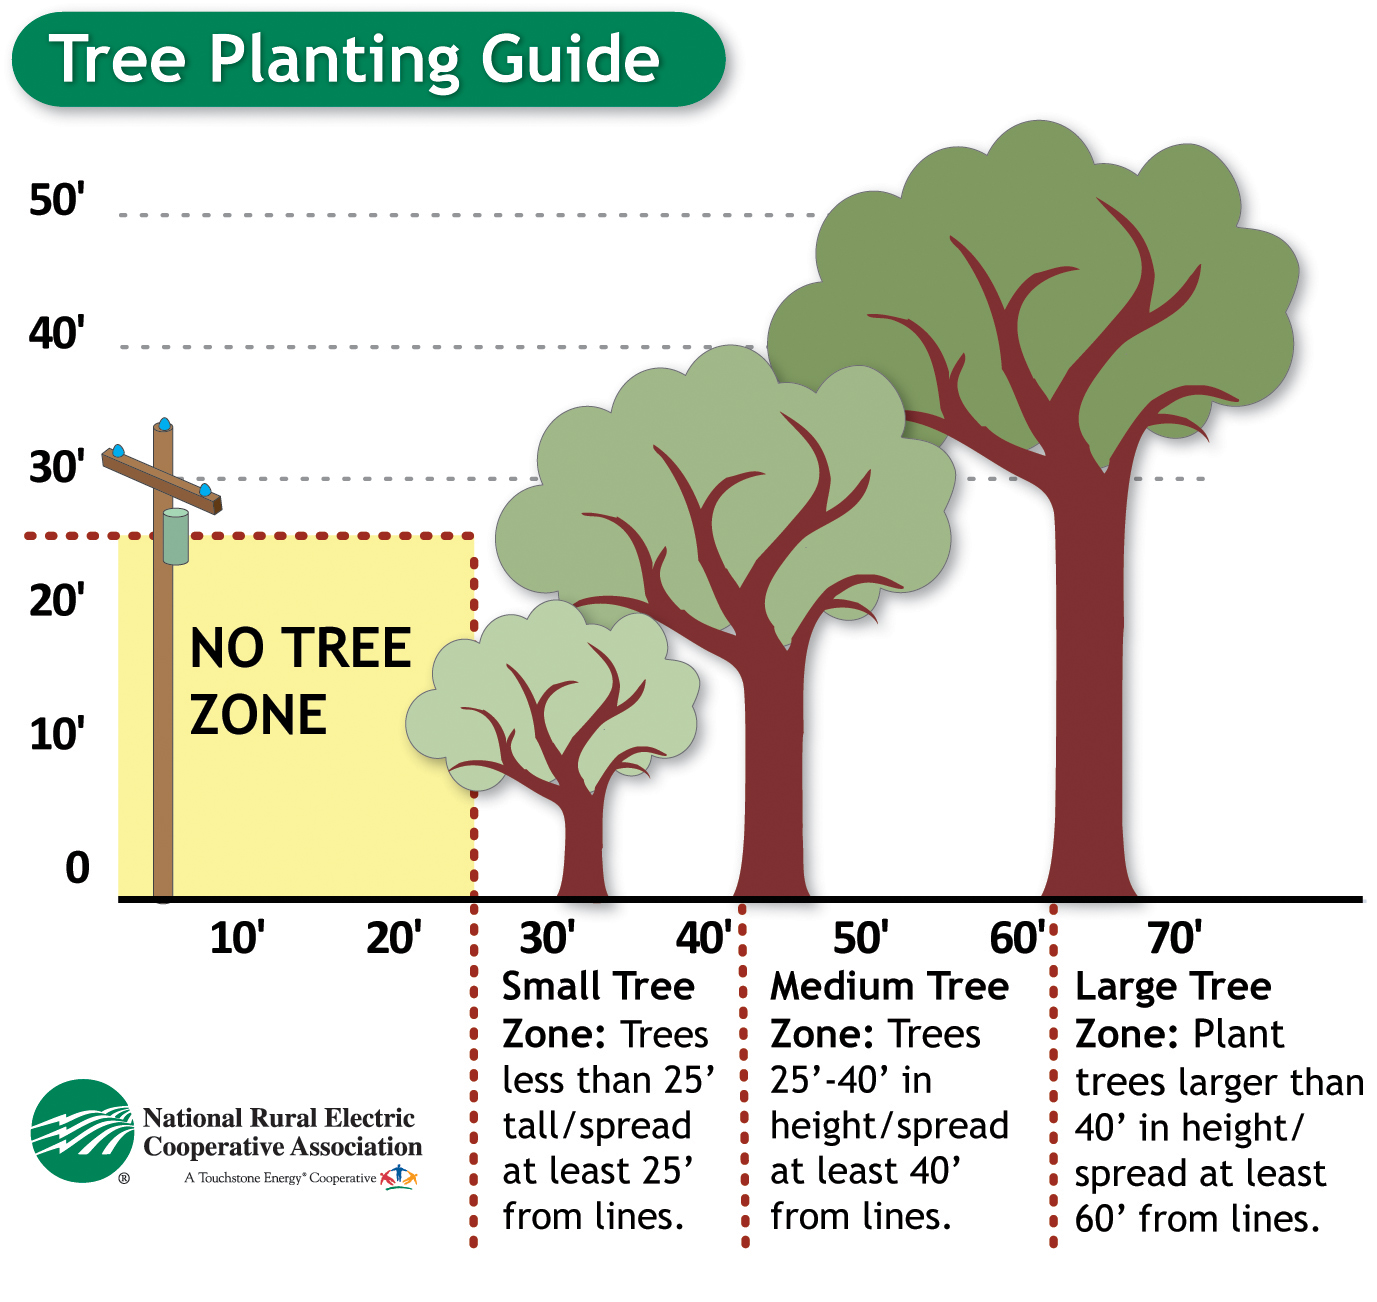 Tree planting guide showing where trees can be planted in relation to power lines